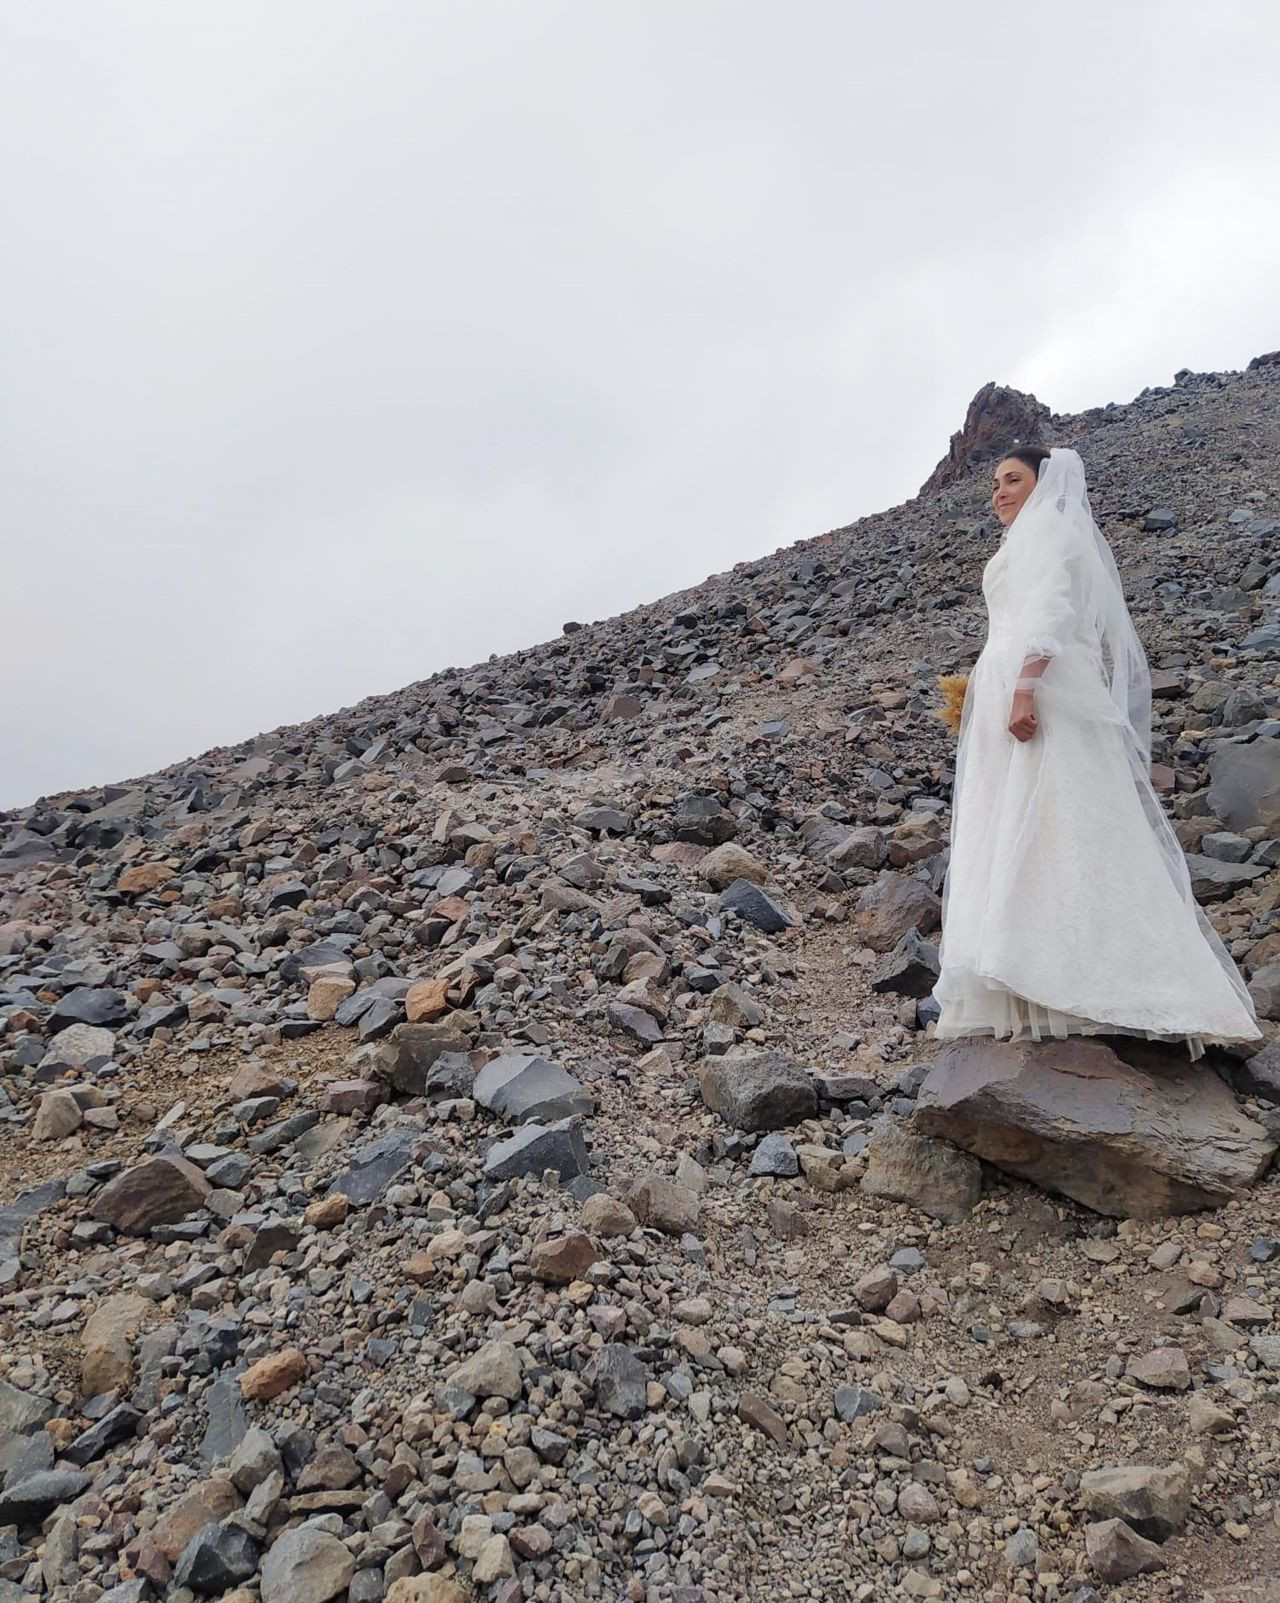 Turkish climber 'marries' Mount Ararat to protest violence against women - Page 4